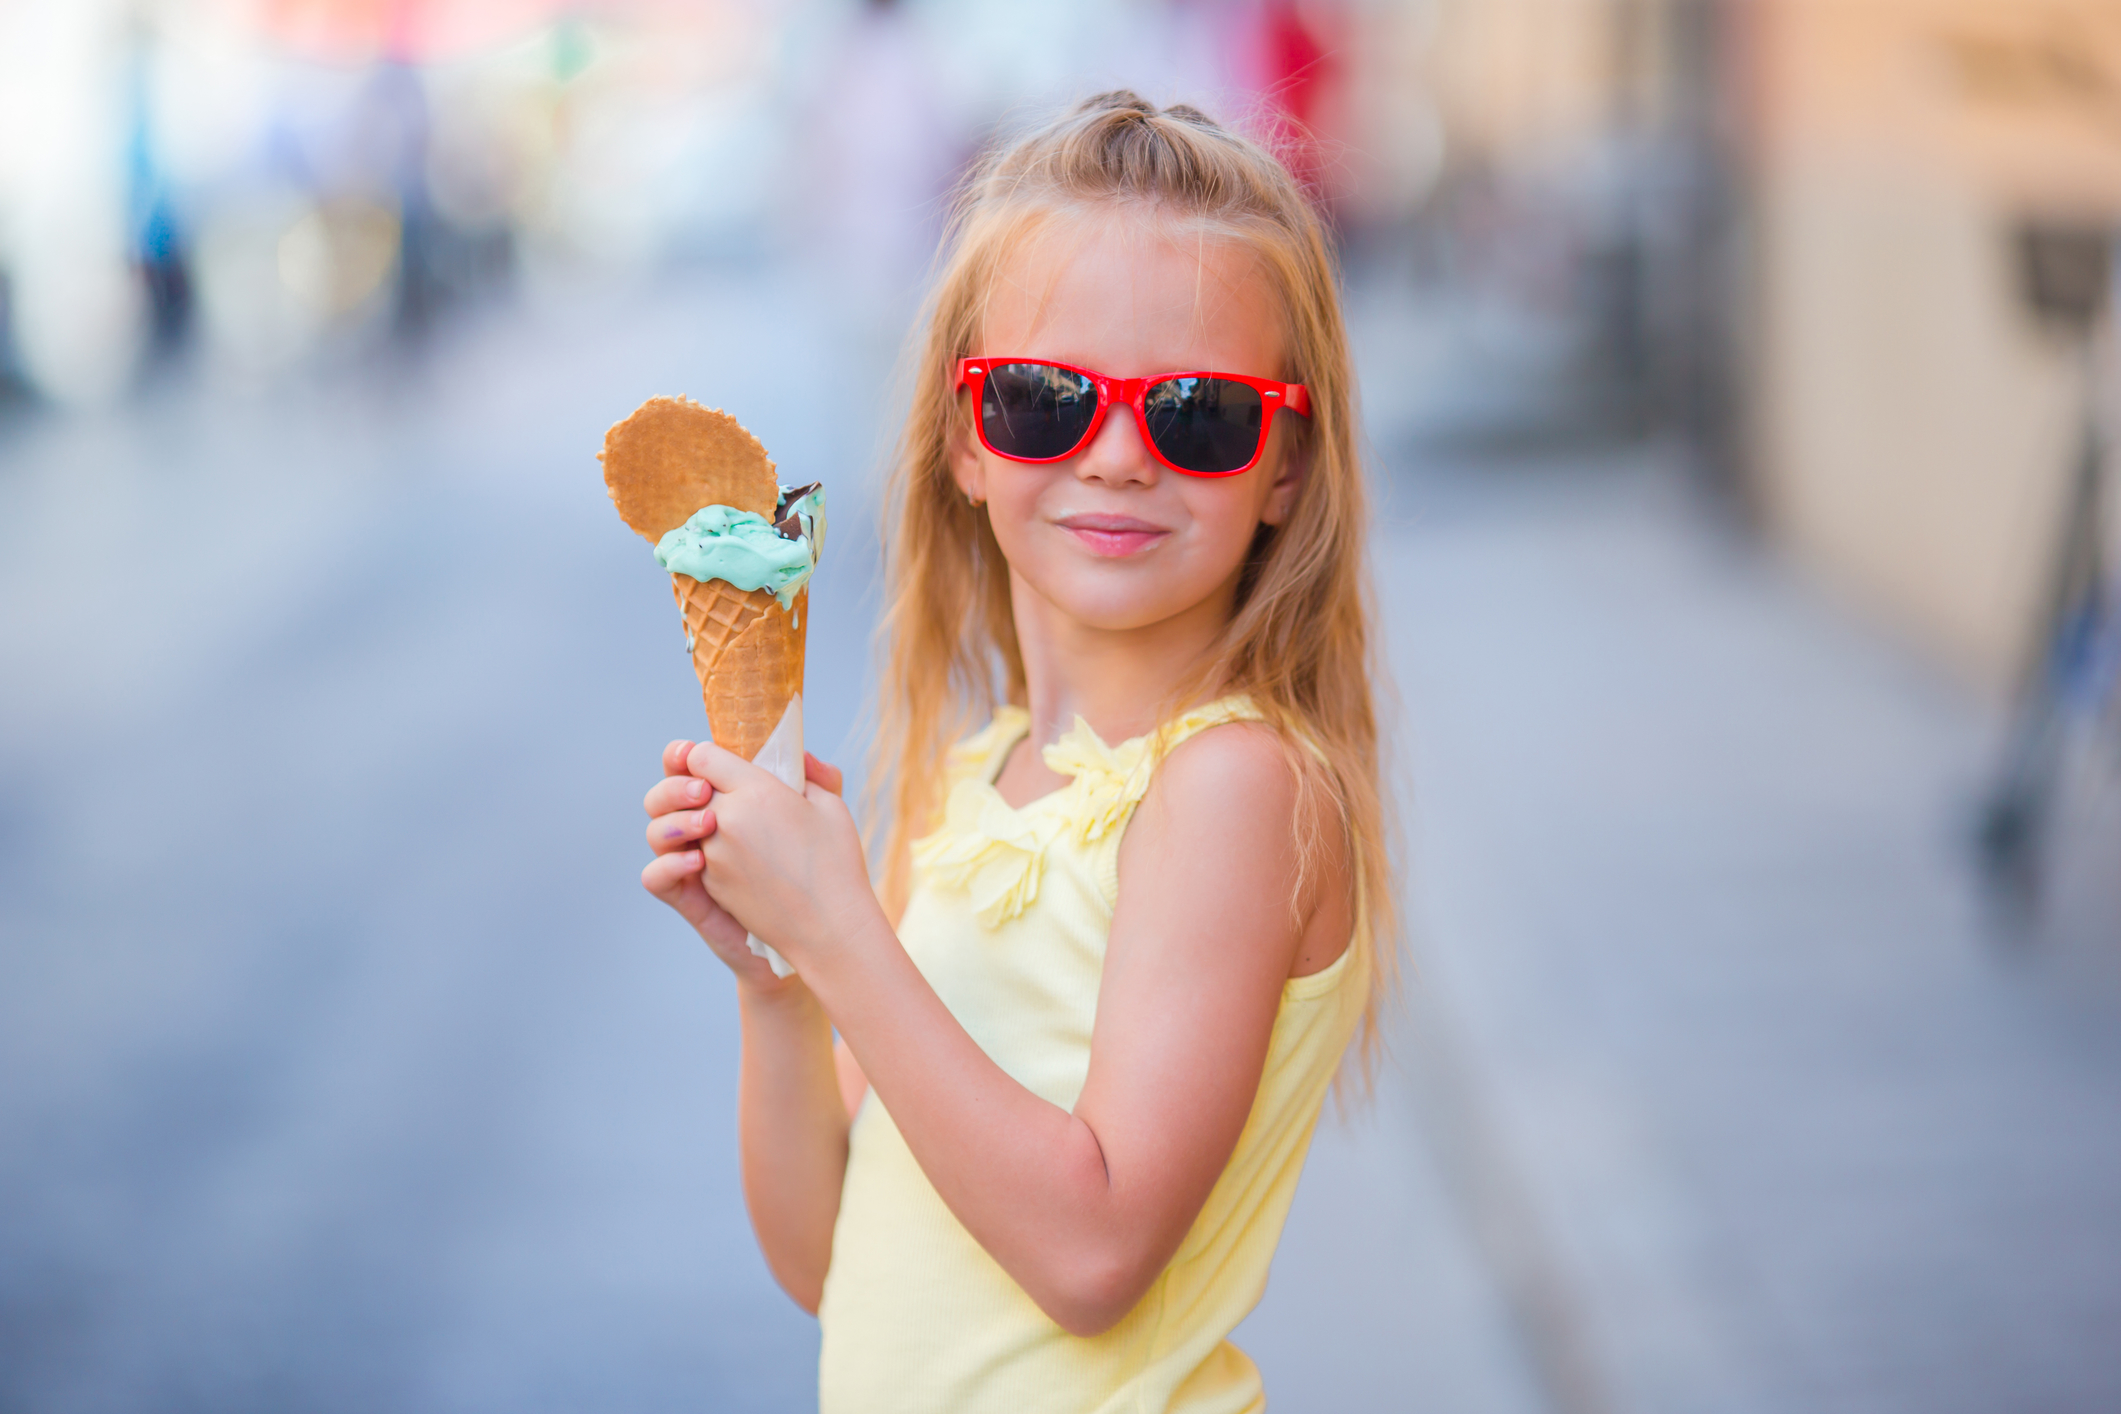 adorable-little-girl-eating-ice-cream-outdoors-at-summer-cute-kid-enjoying-real-italian-gelato-near-